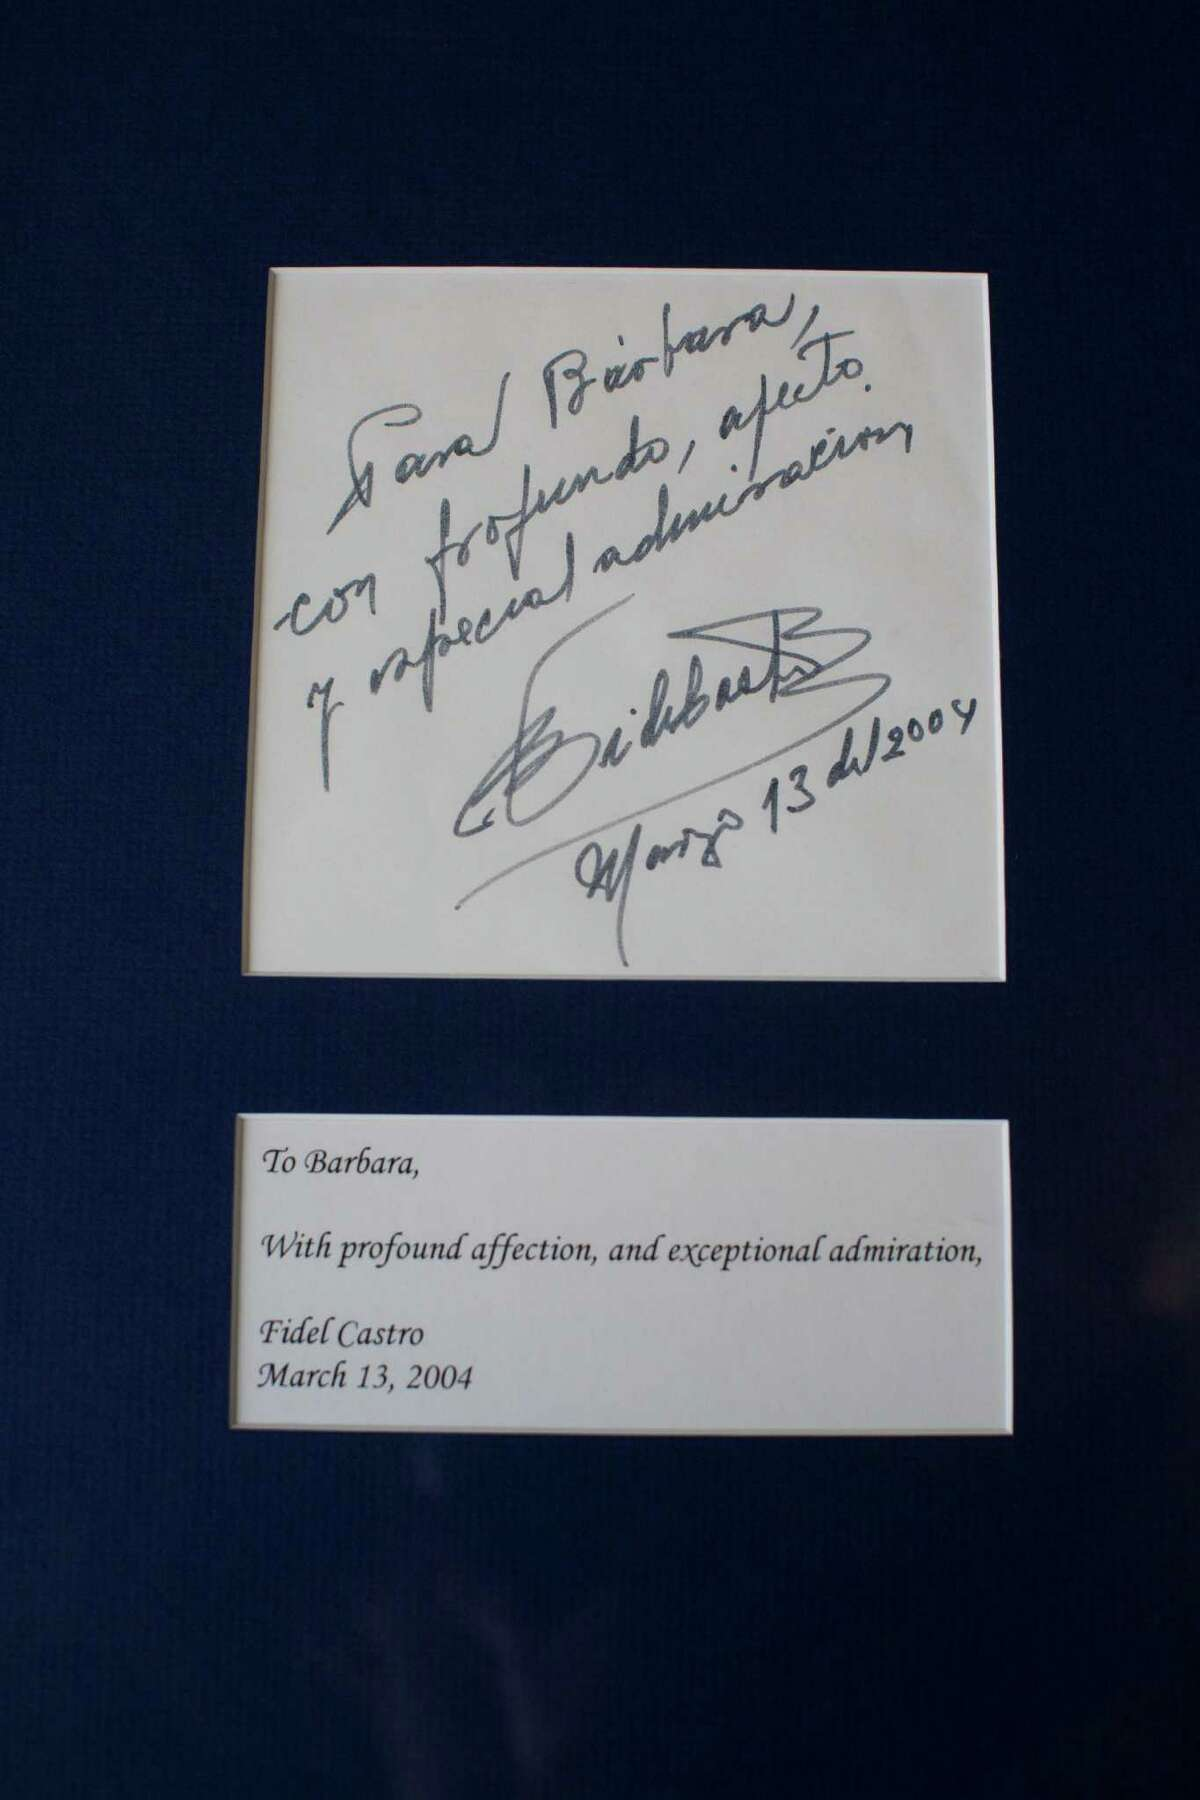 Cuban leader Fidel Castro expressed his admiration for Lee in a handwritten note.